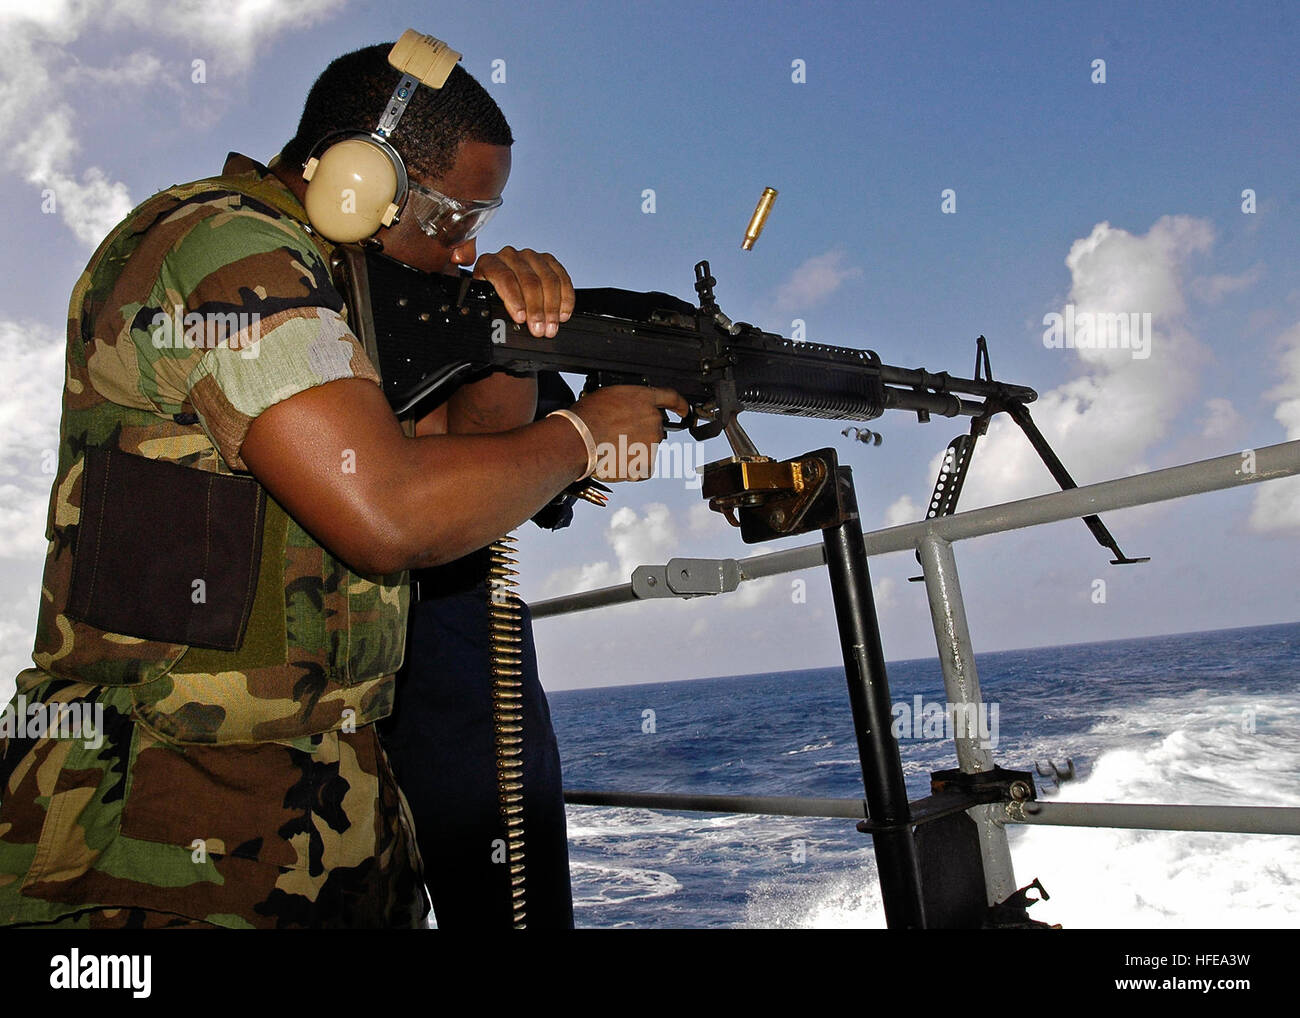 050220-N-4166B-020 Pacific Ocean (Feb. 20, 2005) - An empty shell casing ejects from the chamber of an M-60 machine - Stock Image